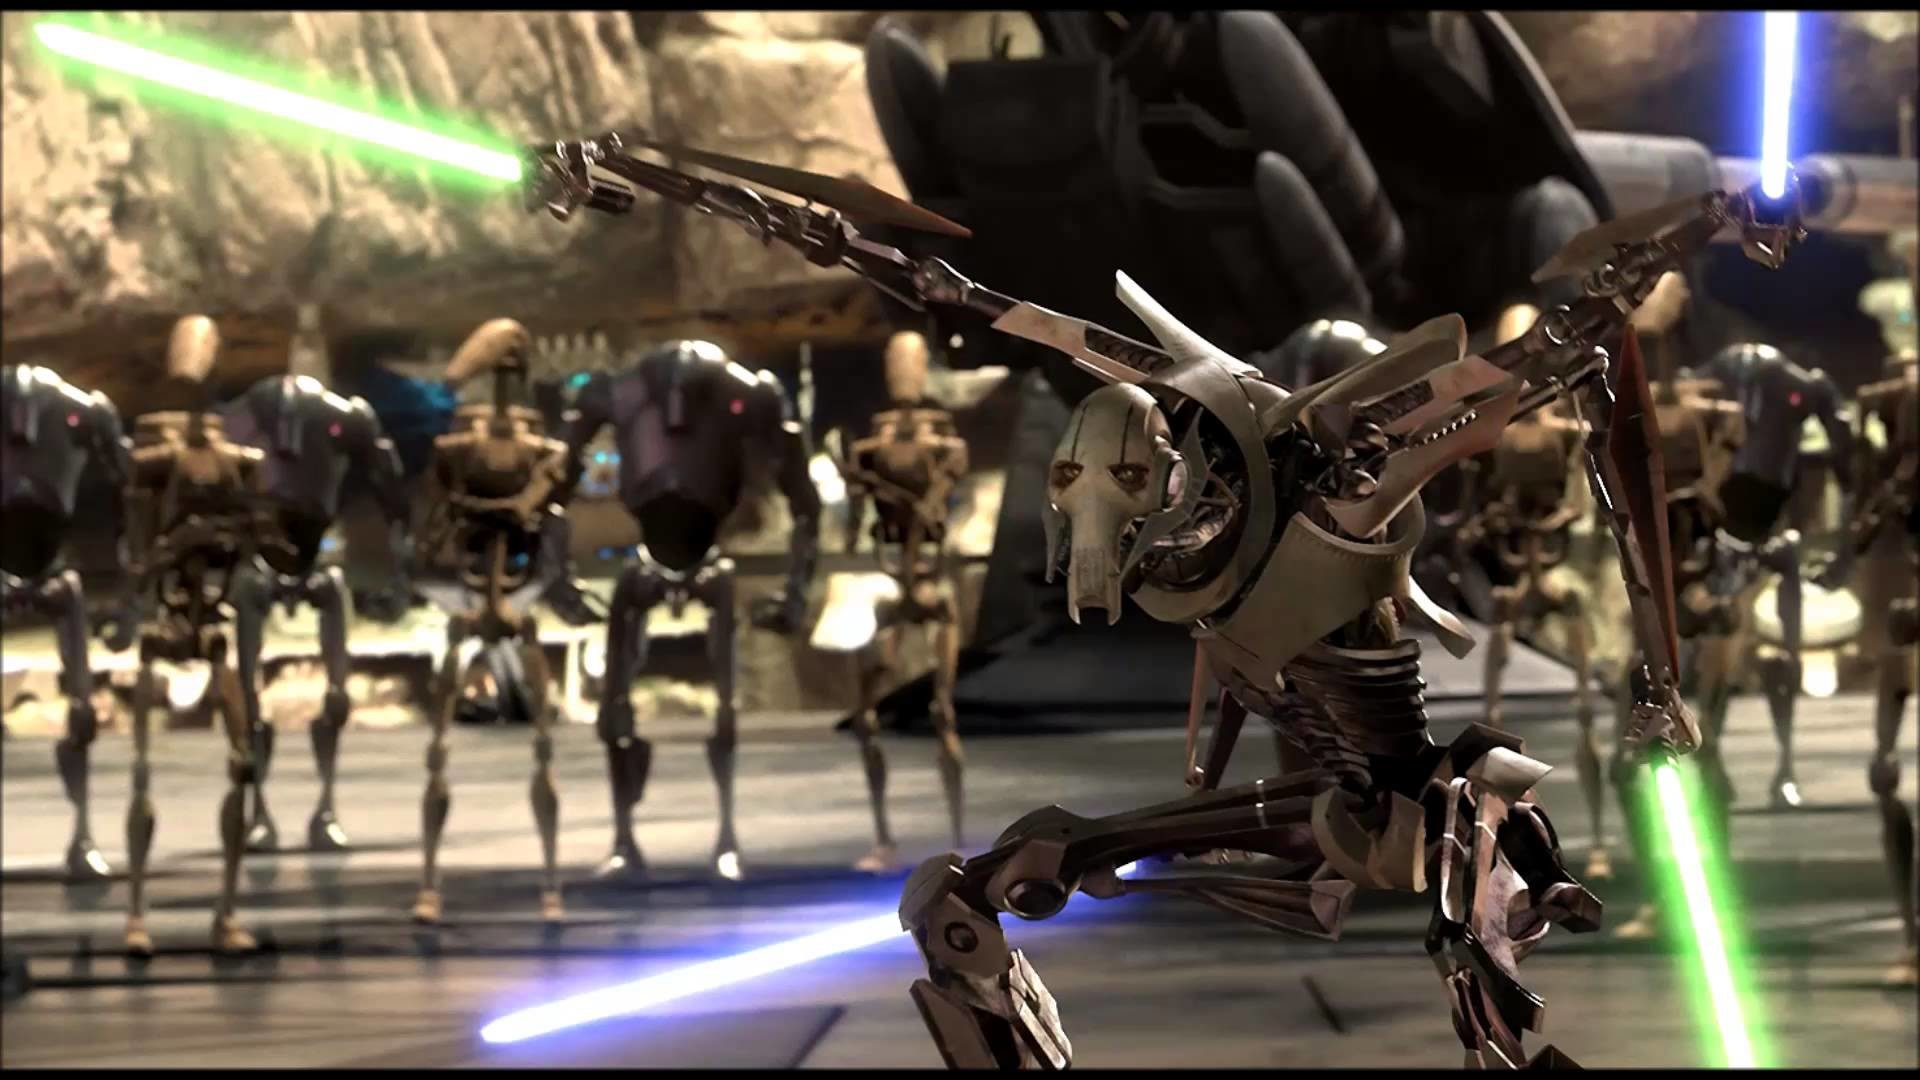 General Grievous Wallpaper Wallpapertag